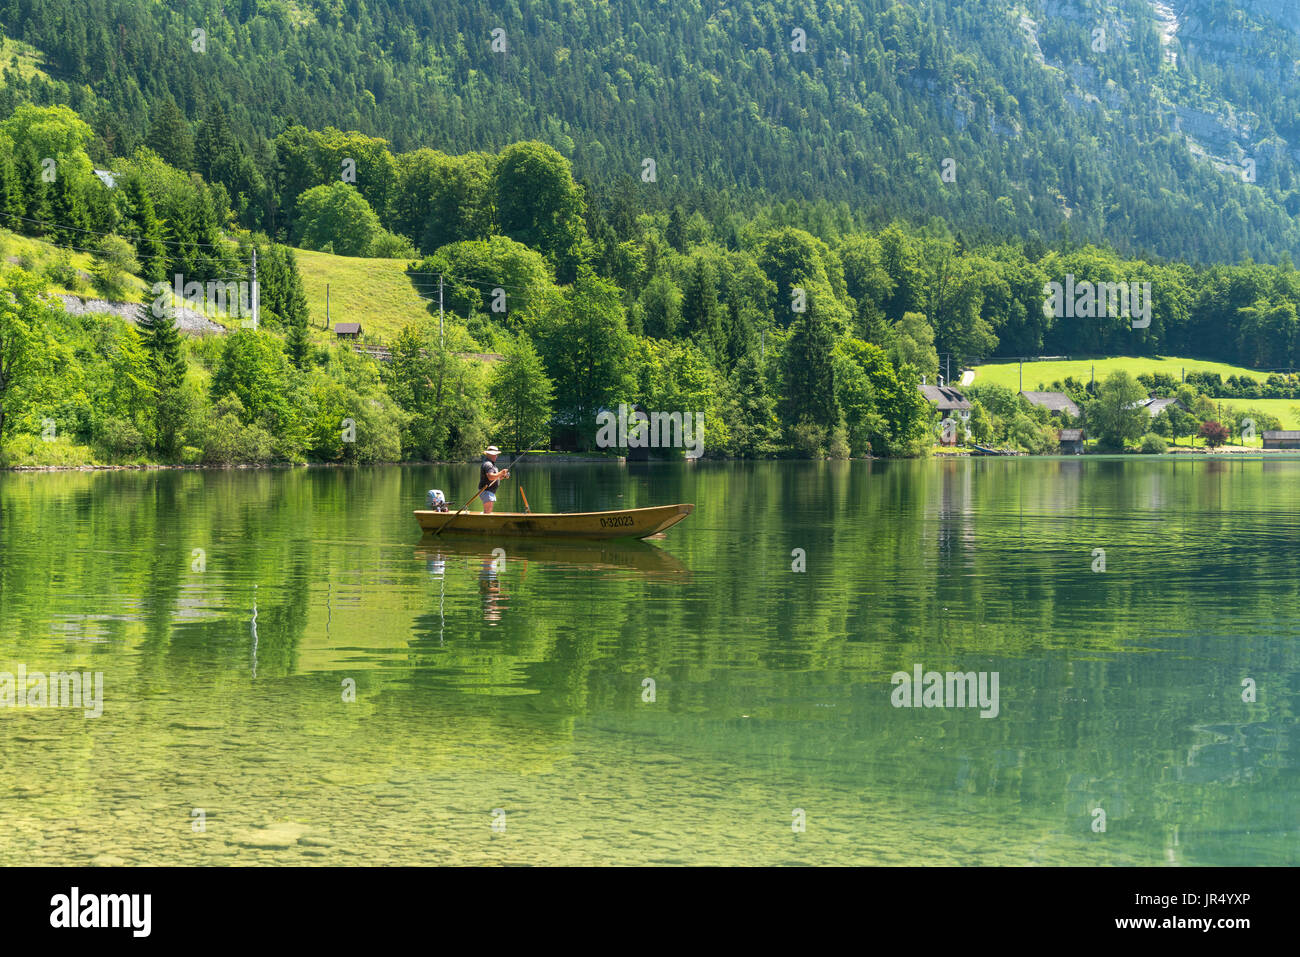 Angler im Boot am Hallstätter See, Salzkammergut, Oberösterreich, Österreich  |   angling on a boat  on lake Hallstätter See, Salzkammergut region, Up - Stock Image